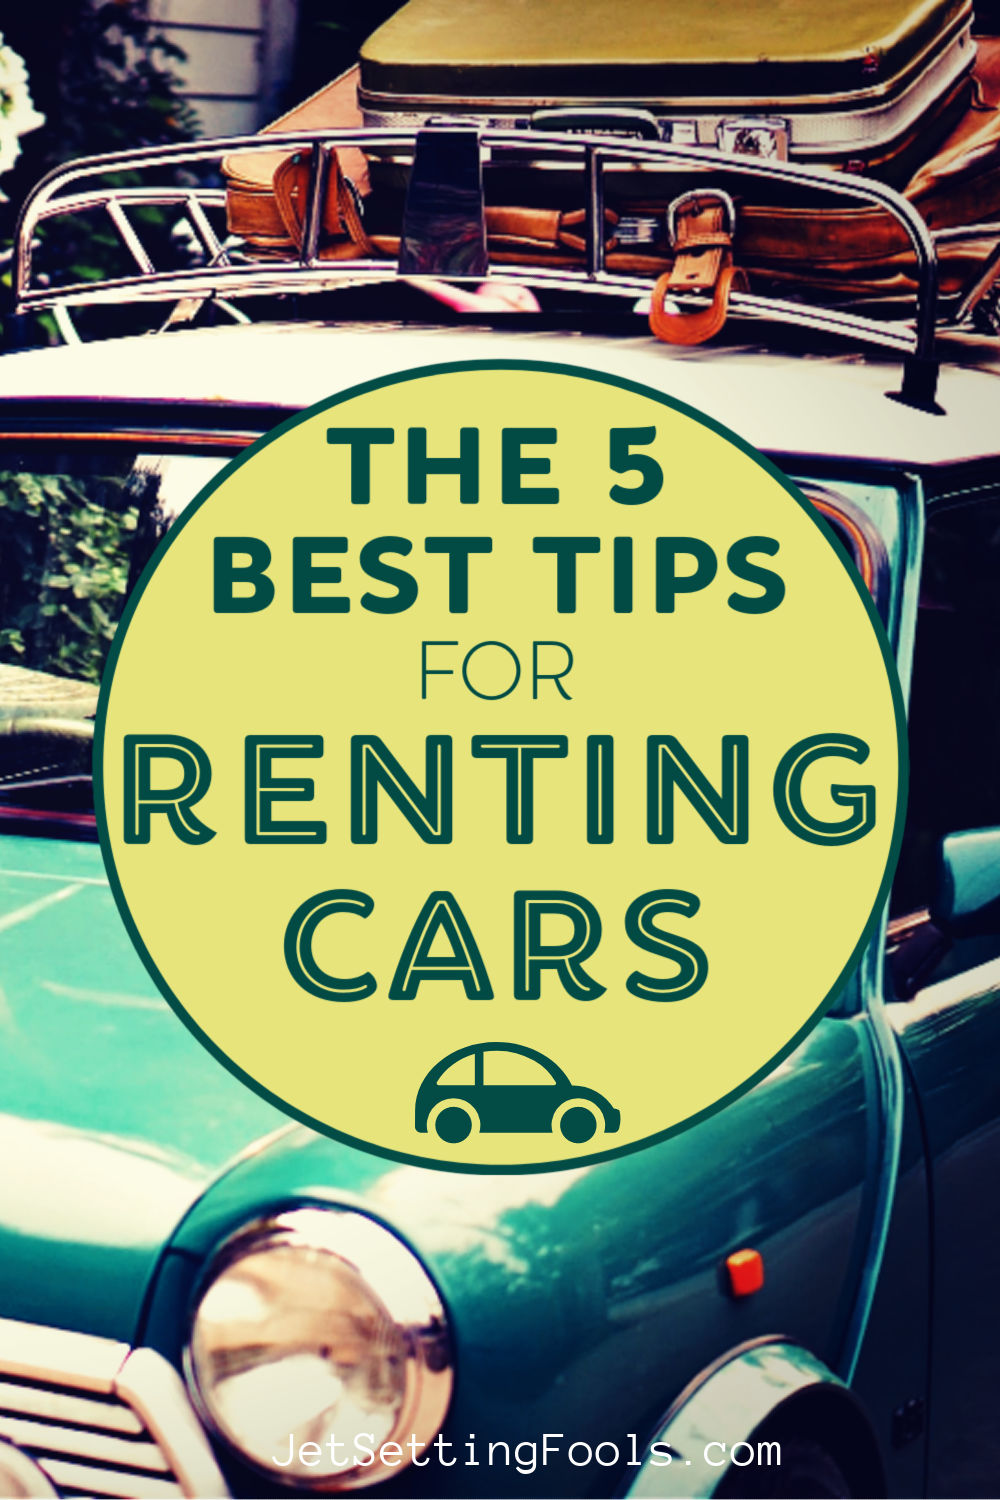 5 Best Tips for Renting Cars by JetSettingFools.com